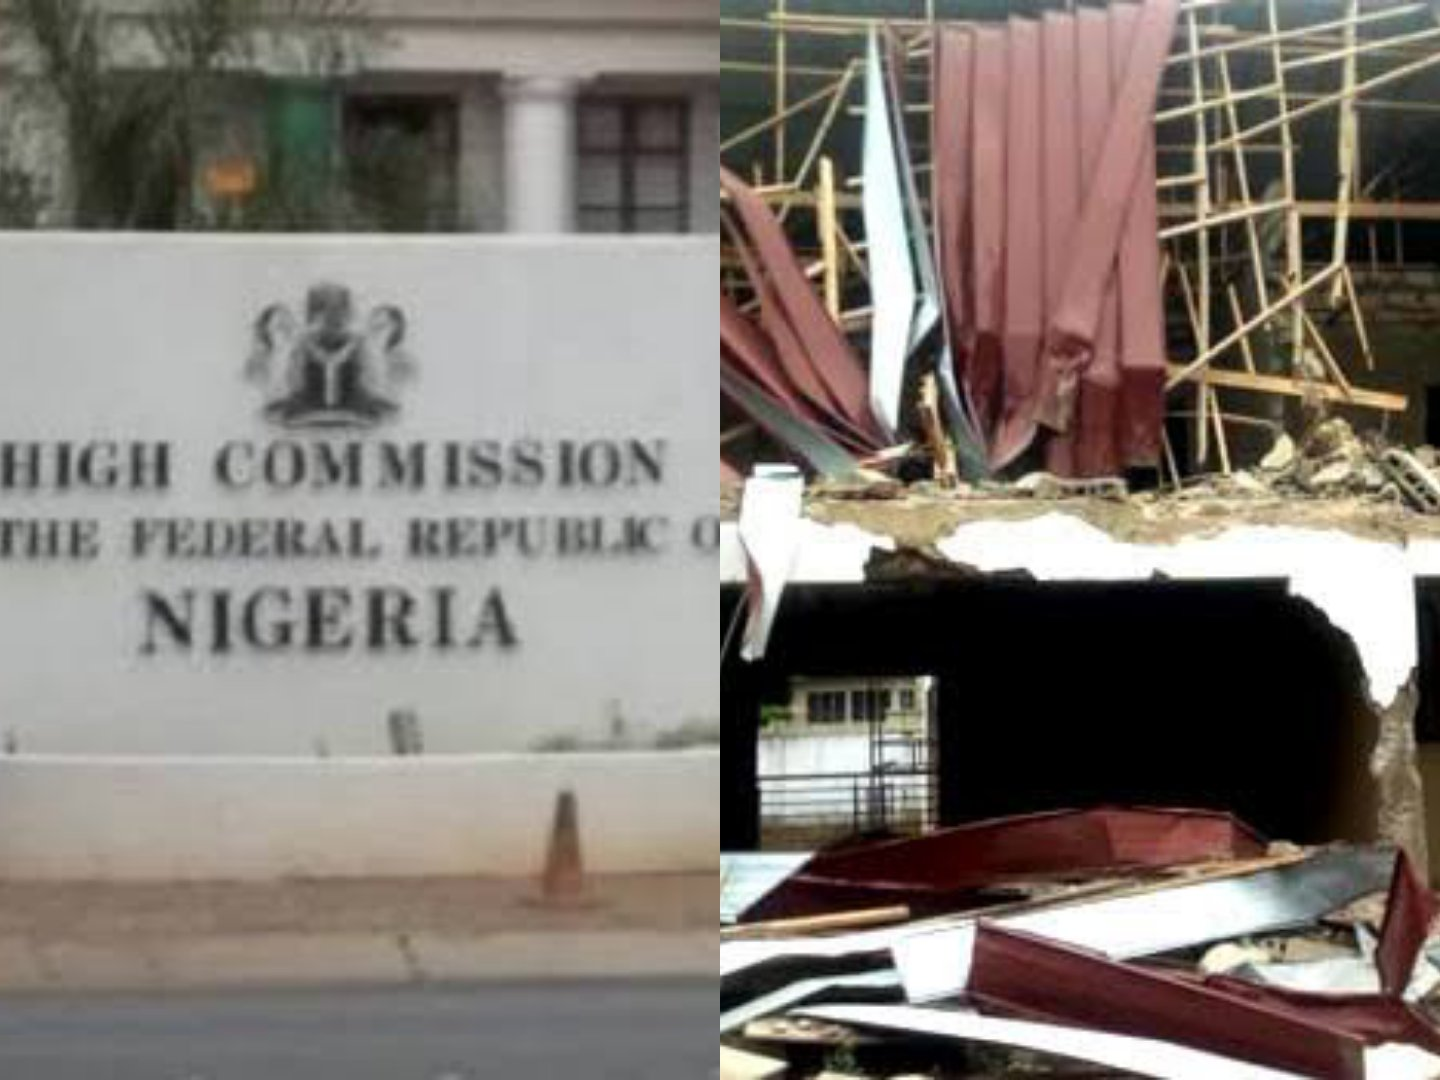 Why We Demolished Nigeriab High Commission's Building - Ghanian Monarch